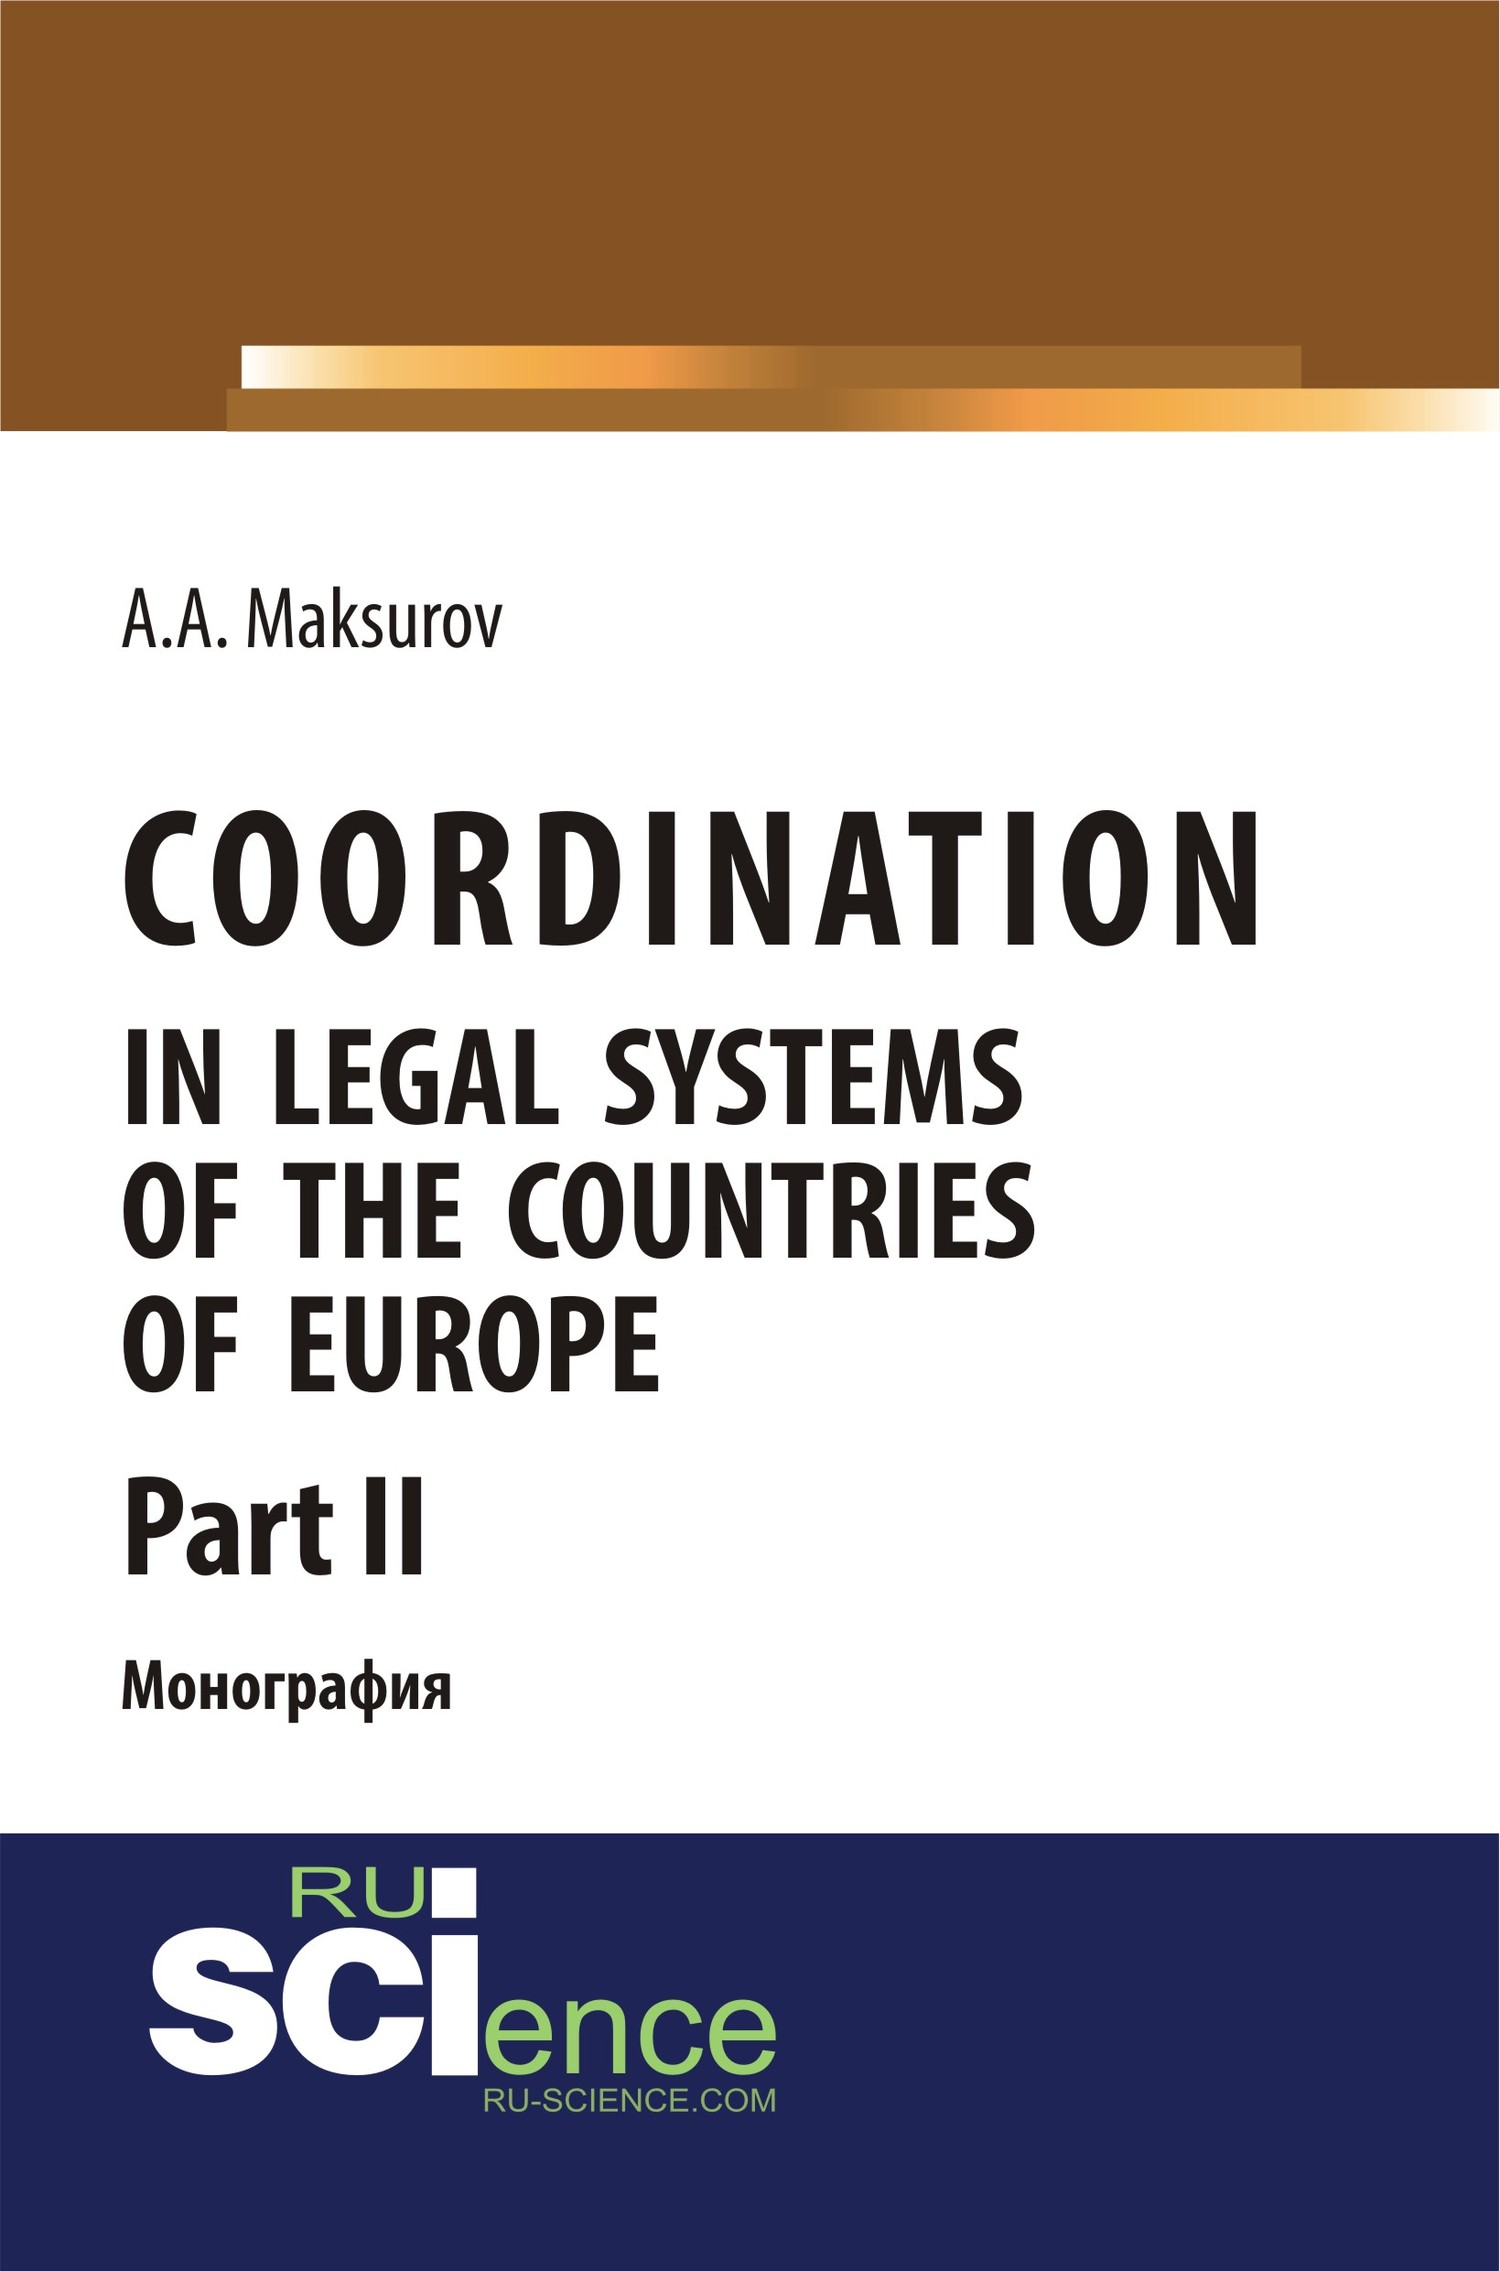 А. А. Максуров Coordination in legal systems of the countries of Europe. Part II passive activity rules – law